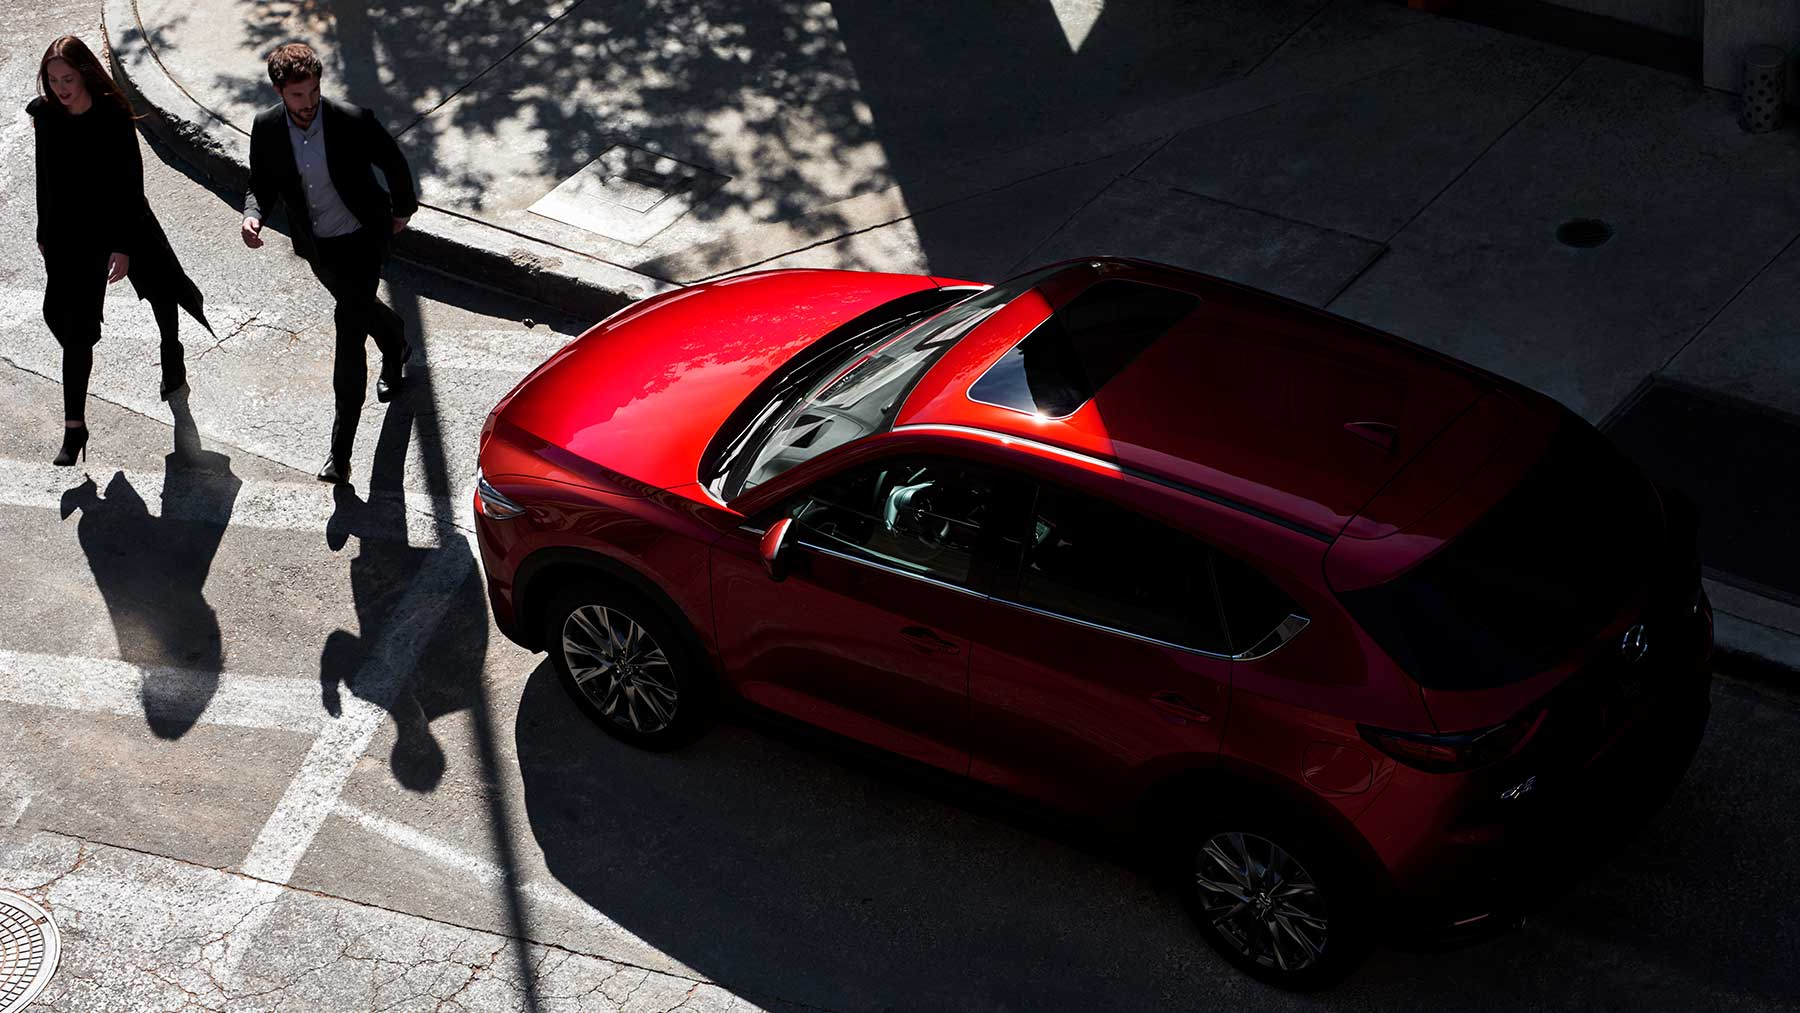 red 2019 mazda cx-5 stopped at a crosswalk